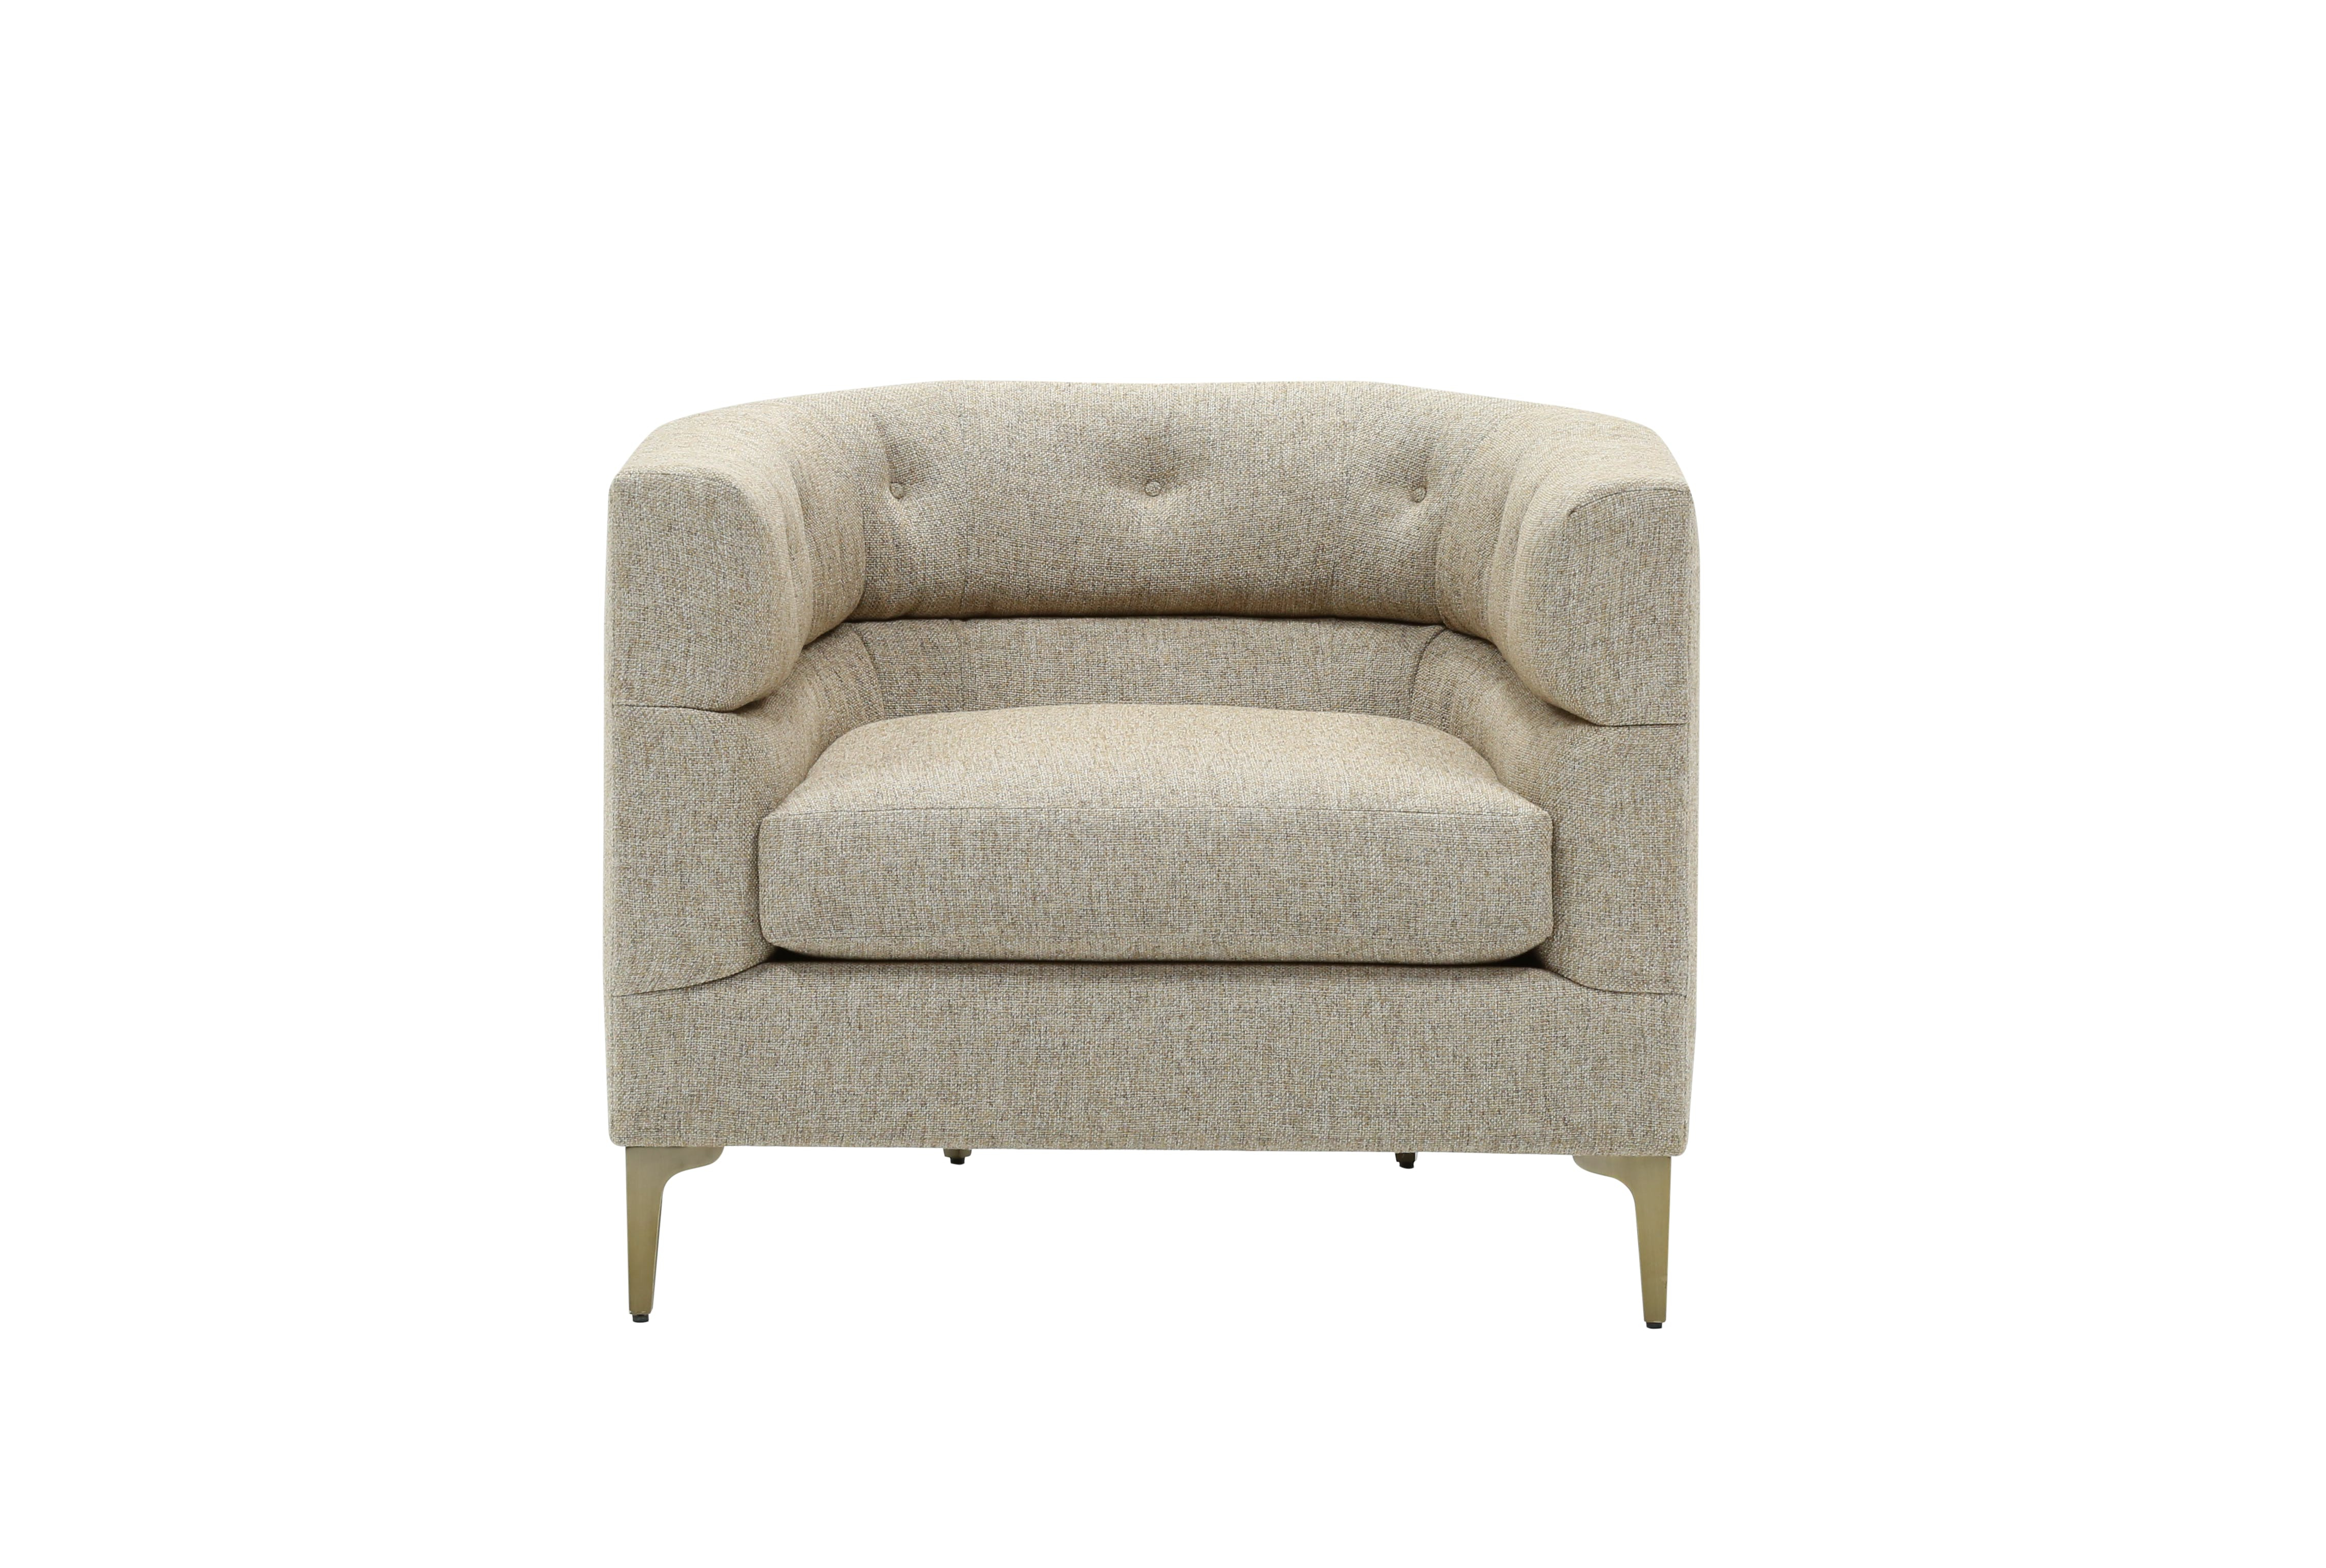 Nate Berkus Just Launched A Home Collection With Hubby Jeremiah Inside Liv Arm Sofa Chairs By Nate Berkus And Jeremiah Brent (Image 11 of 20)